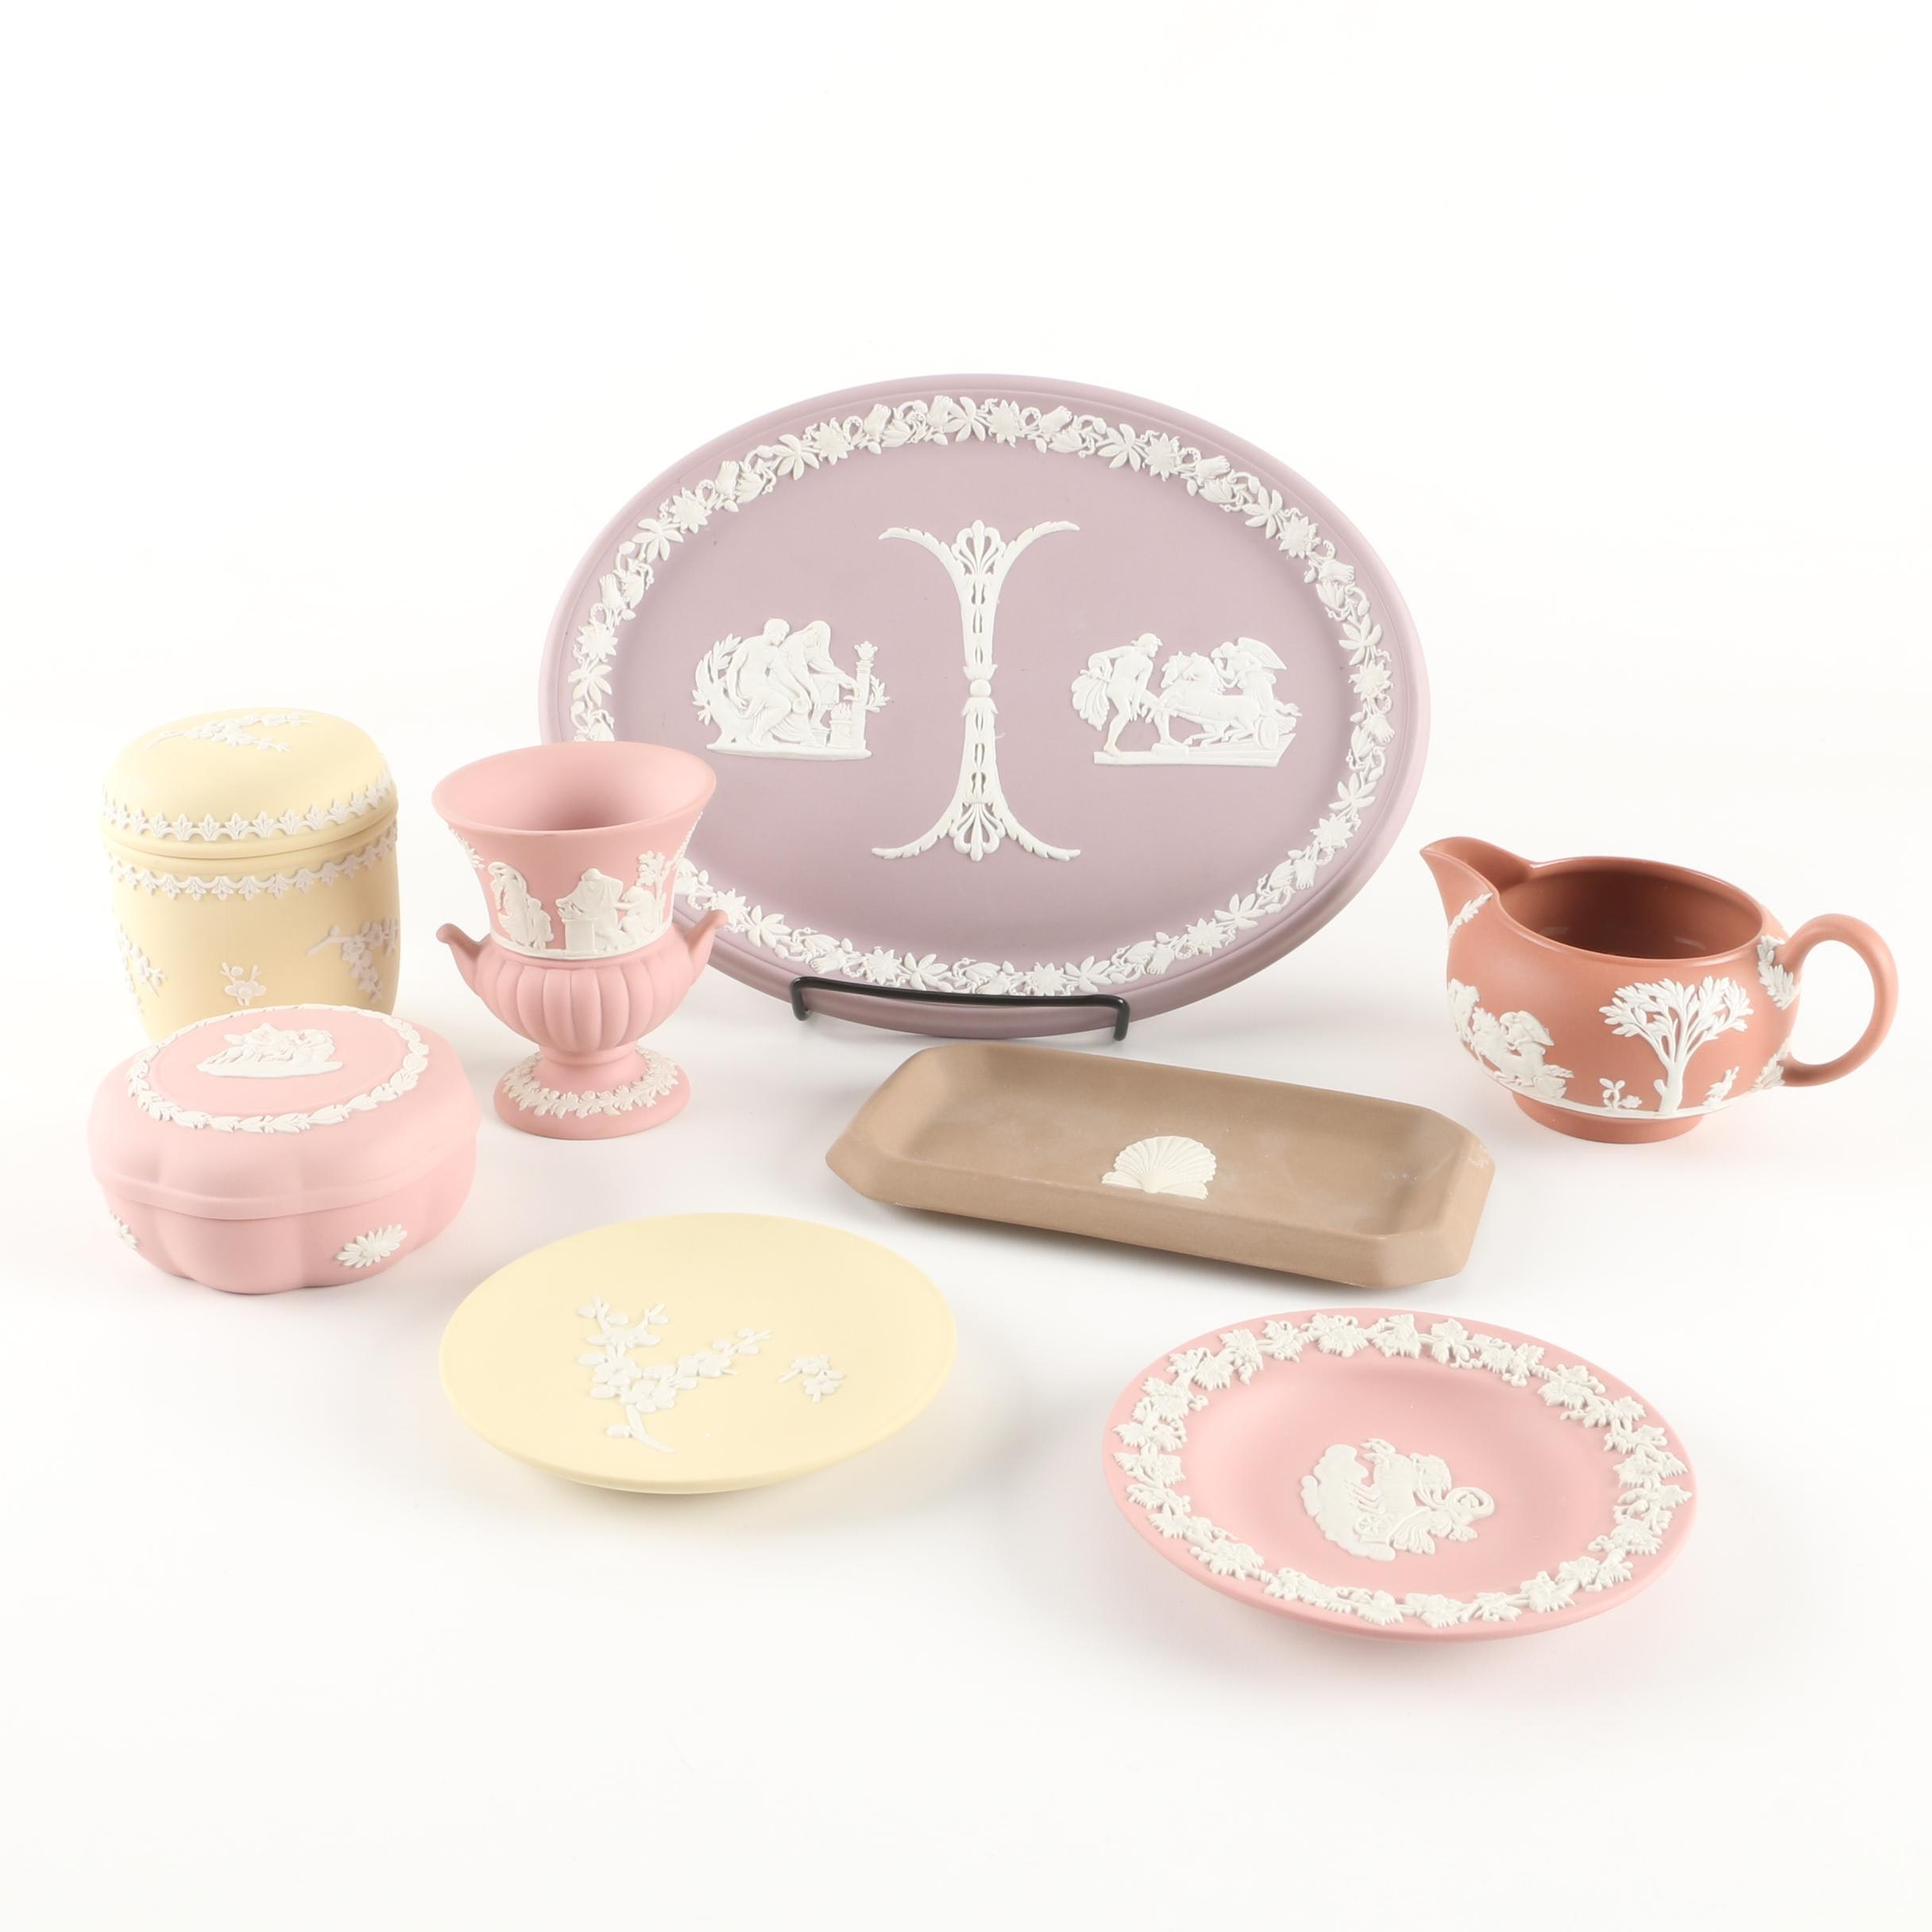 Wedgwood Jasperware Trinket Box and Other Décor